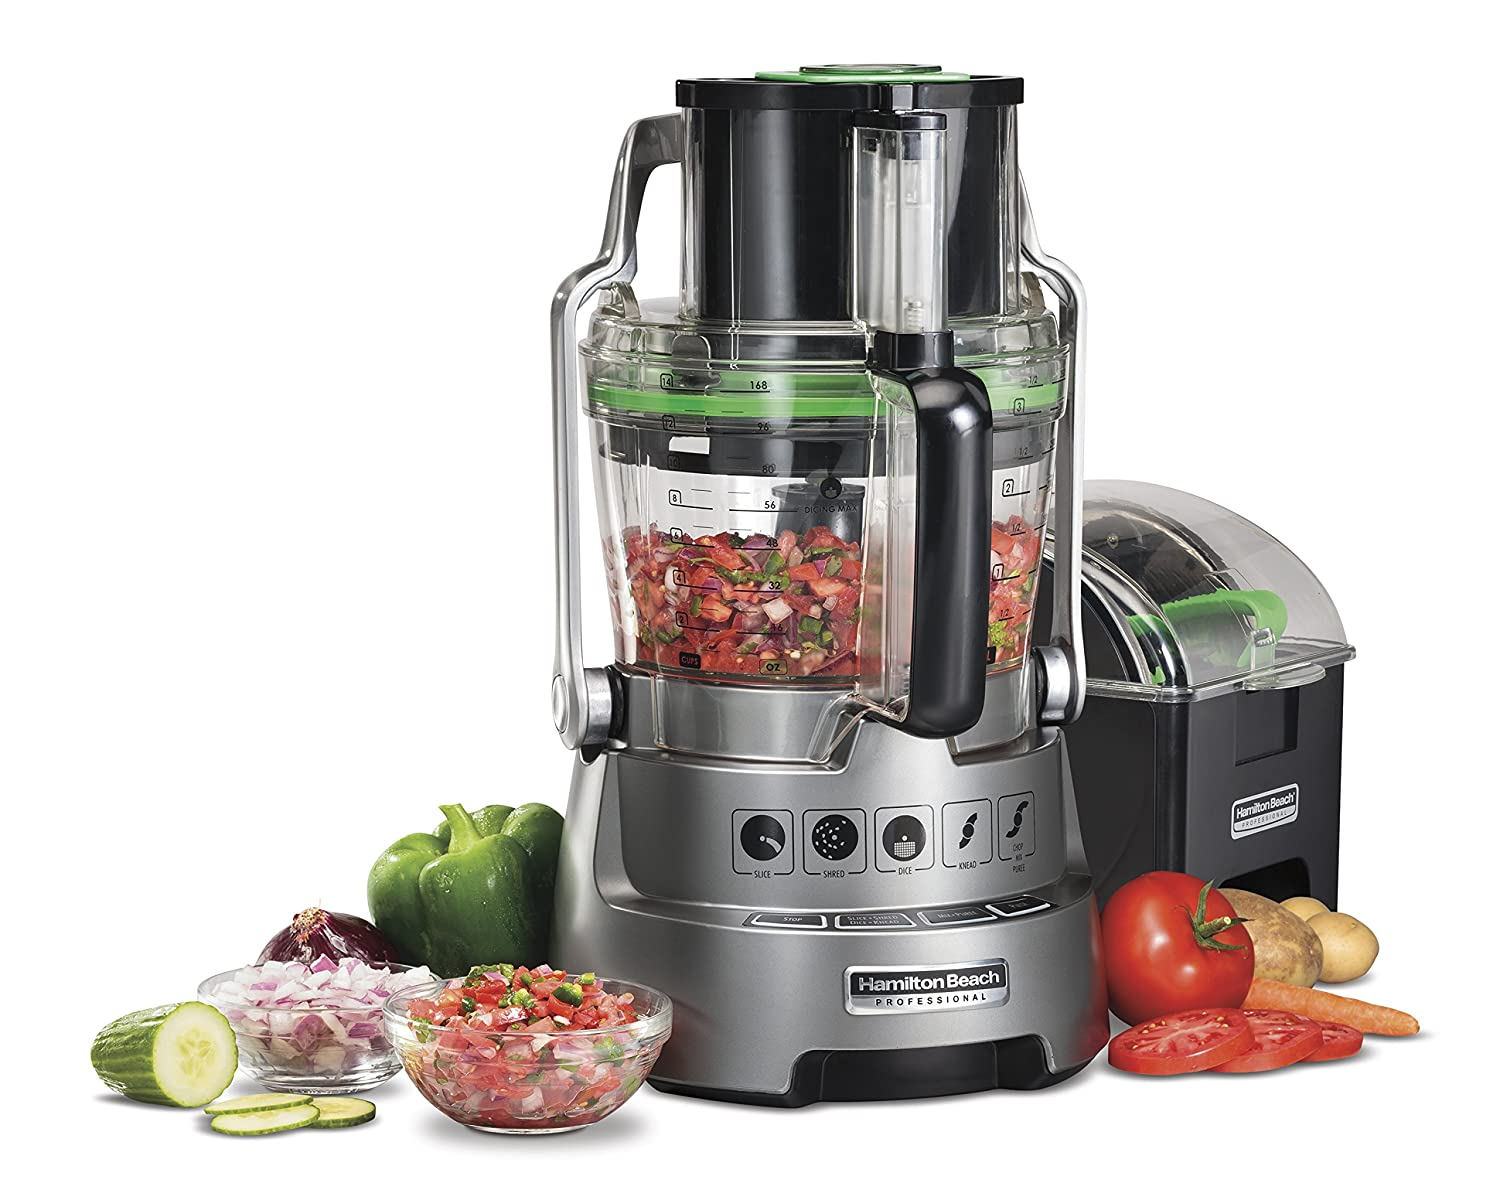 Hamilton Beach Professional Dicing Food Processor with 14-Cup BPA-Free Bowl (70825)